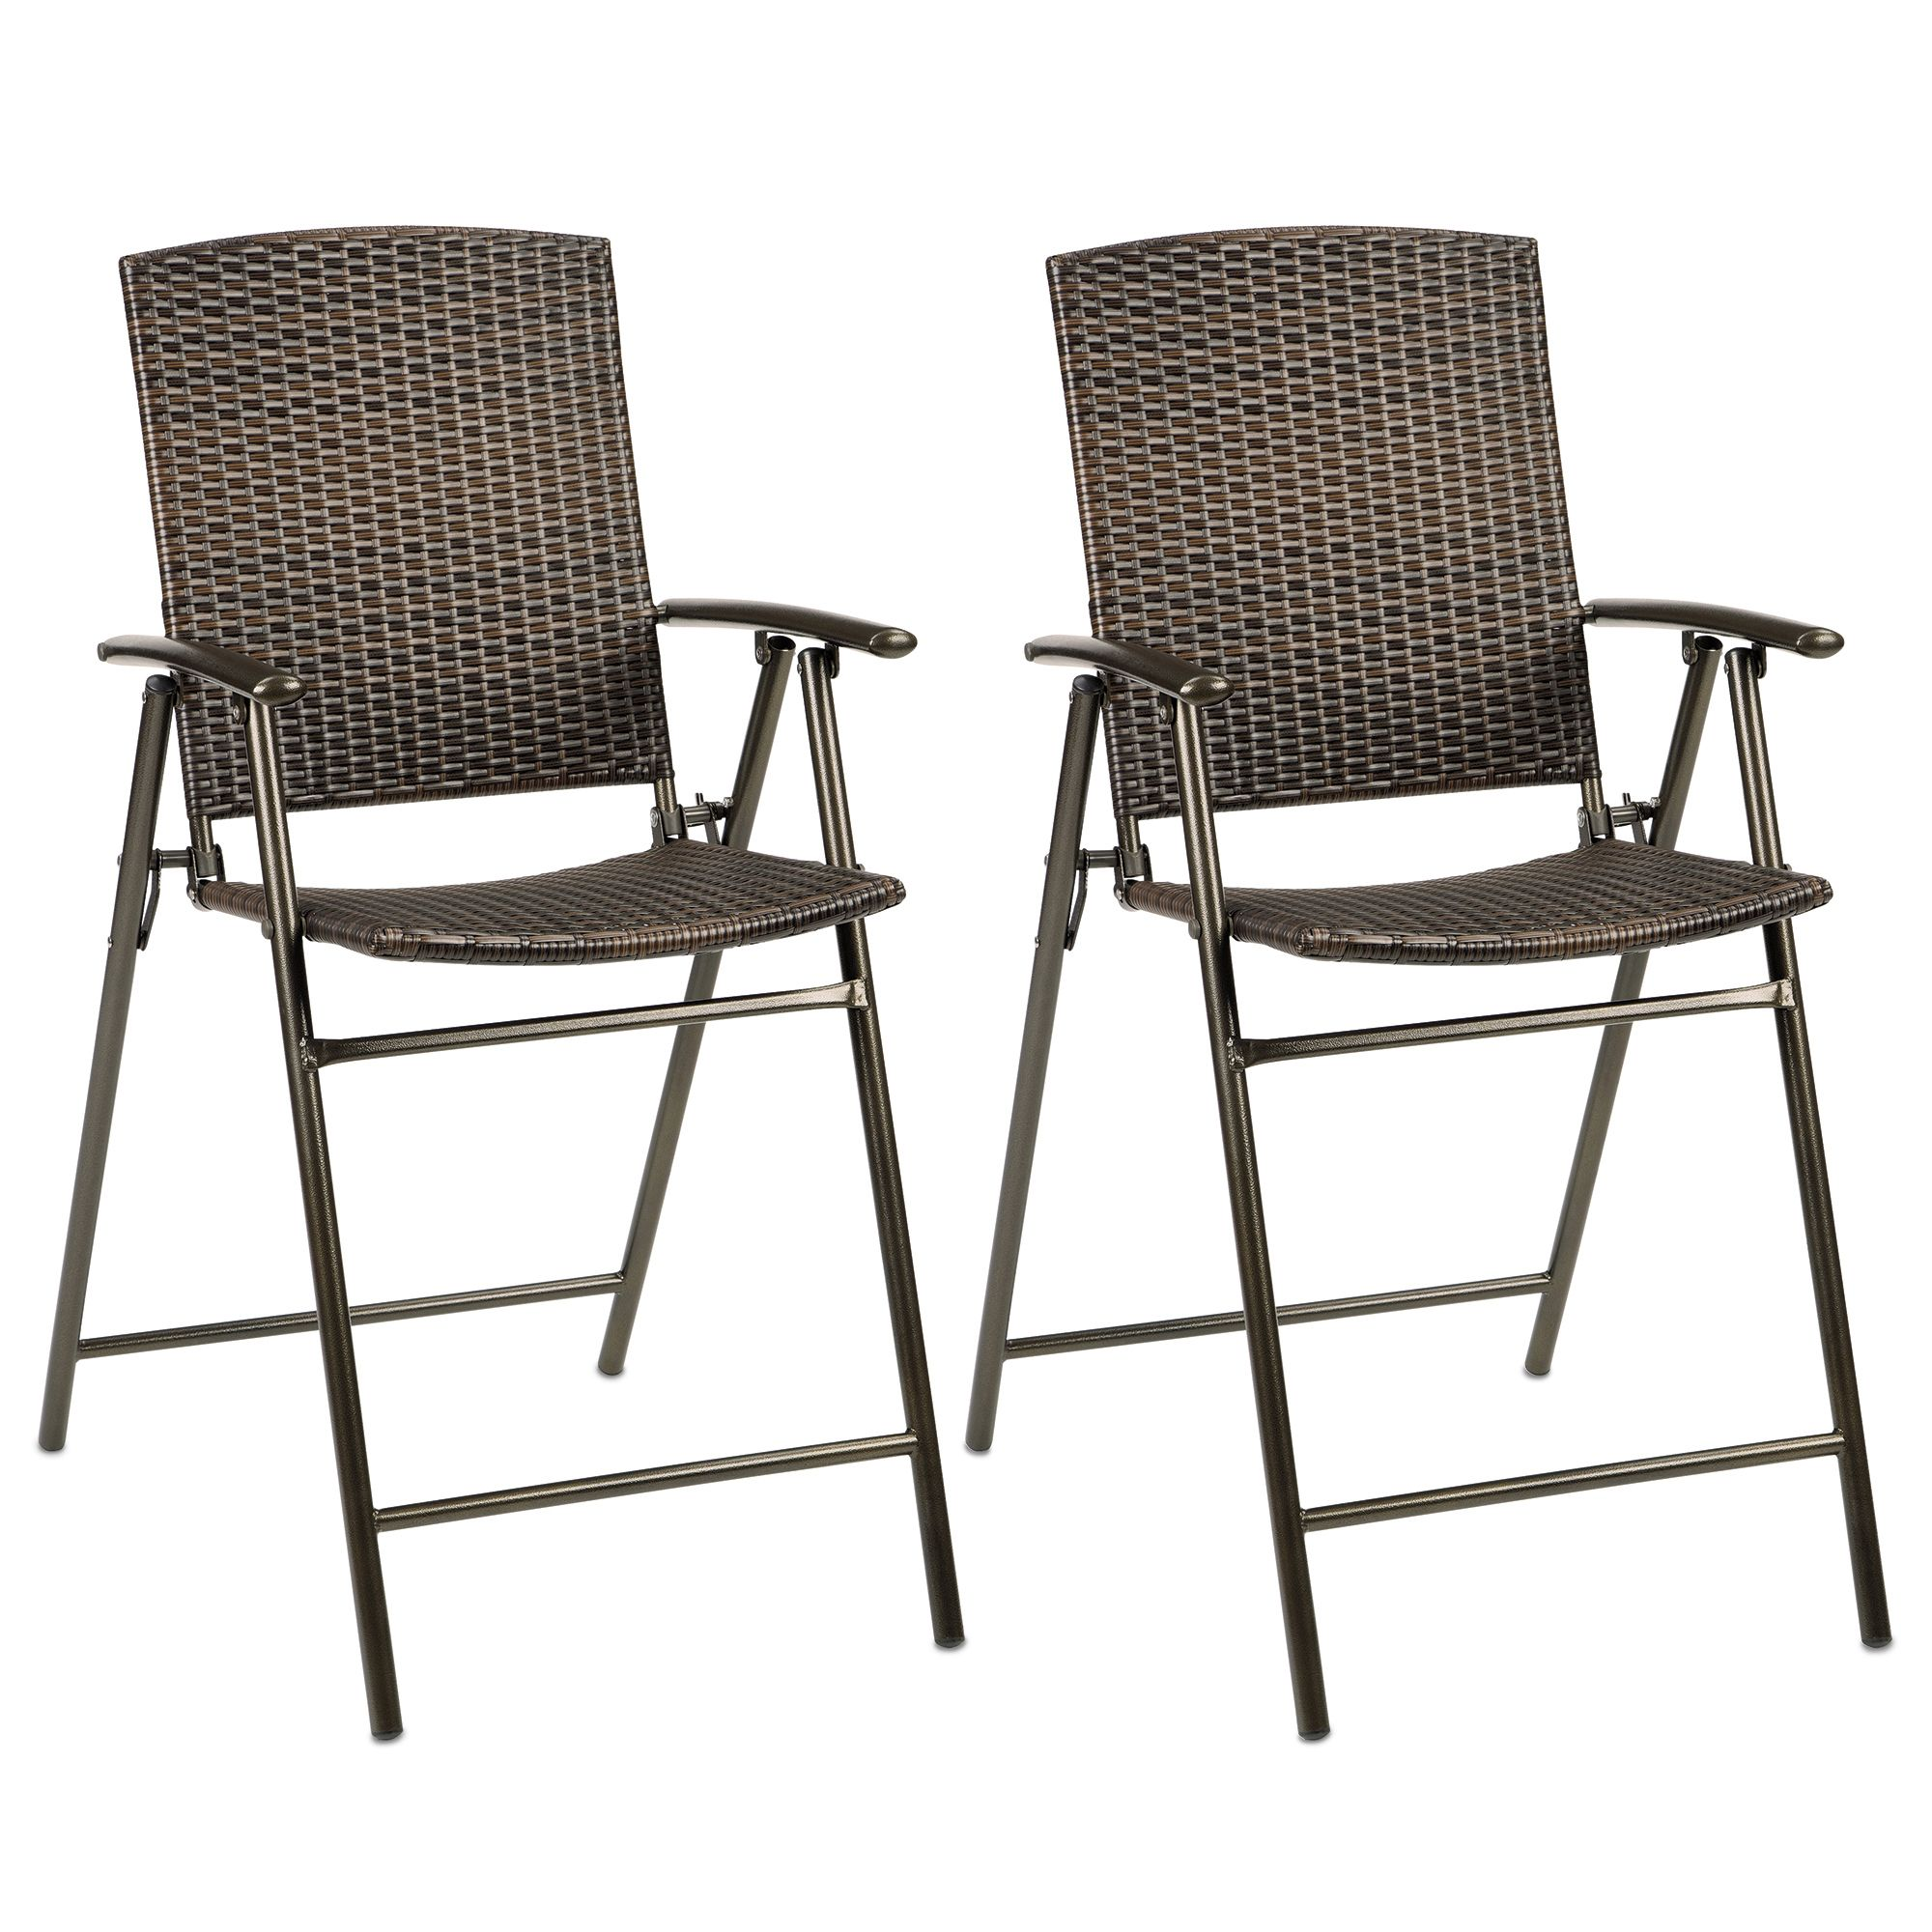 Stratford Wicker Folding Balcony Chair Set of 2 Bed Bath & Beyond